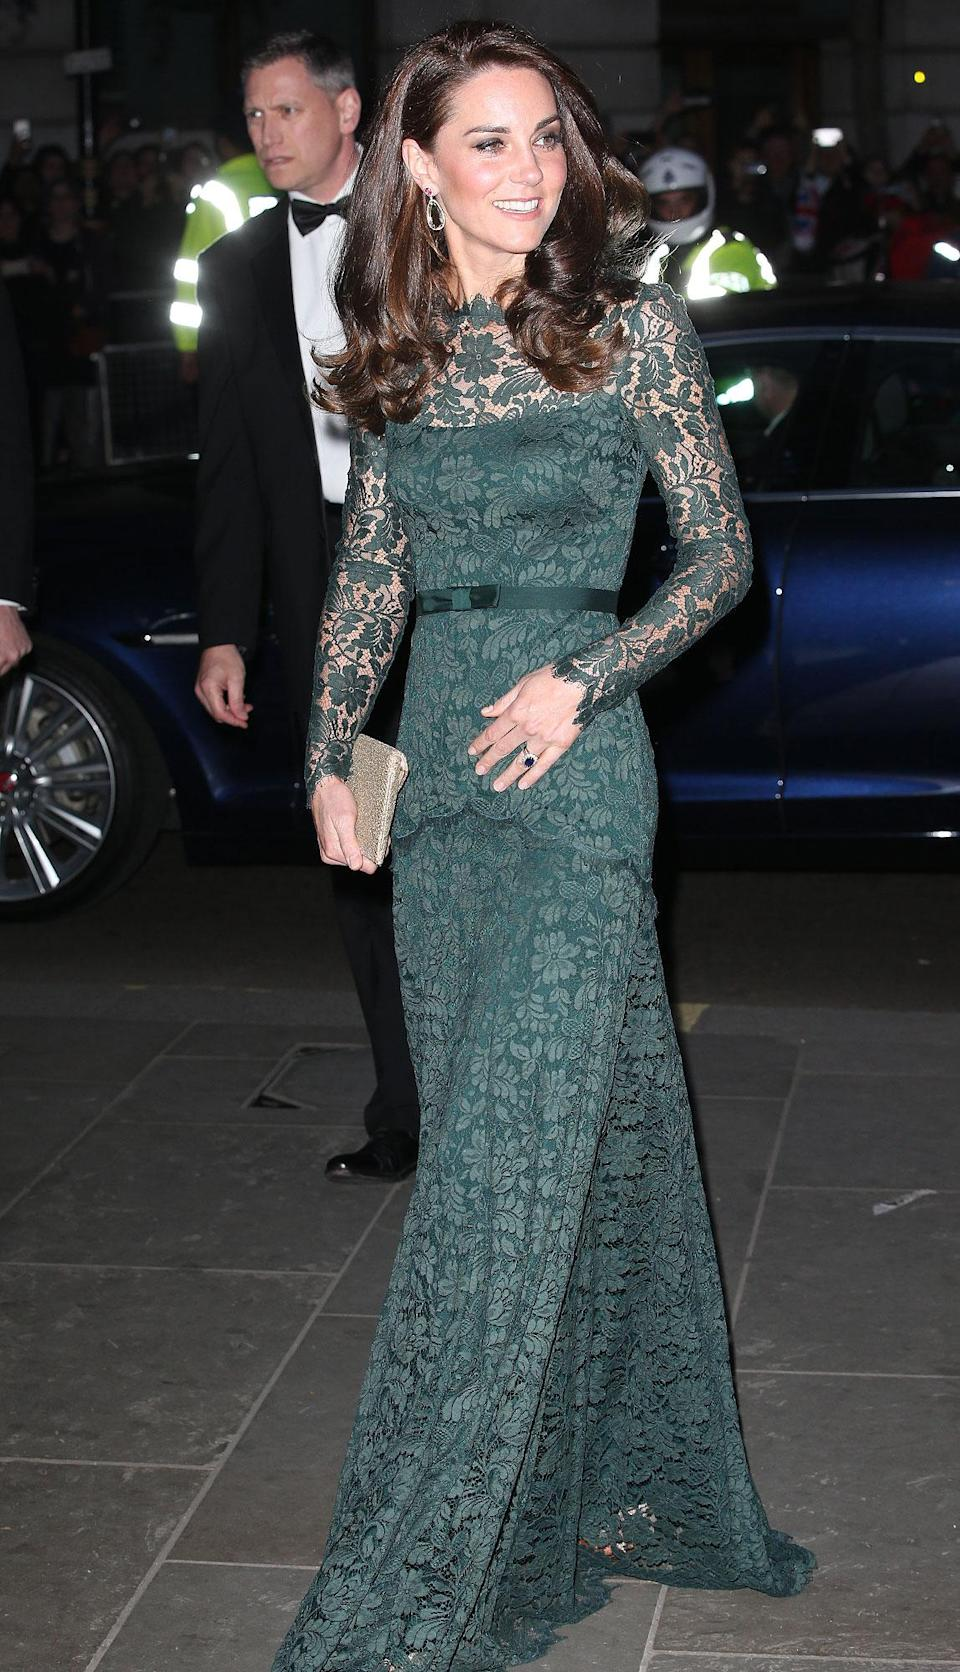 """<p><b>When:</b> March 28, 2017 <b>Where:</b> A gala at the National Portrait Gallery in London <b>Wearing:</b> A green Temperley London gown <b>Get the Look: </b>Eliza J Lace Fit & Flare Dress, $158; <a href=""""https://click.linksynergy.com/fs-bin/click?id=93xLBvPhAeE&subid=0&offerid=390098.1&type=10&tmpid=8157&RD_PARM1=https%253A%252F%252Fshop.nordstrom.com%252Fs%252Feliza-j-lace-fit-flare-dress%252F4855786%253Forigin%253Dkeywordsearch-personalizedsort%2526fashioncolor%253DGREEN&u1=POROYALSKateSpringStyleMM"""" rel=""""nofollow noopener"""" target=""""_blank"""" data-ylk=""""slk:nordstrom.com"""" class=""""link rapid-noclick-resp"""">nordstrom.com</a> ASOS Premium Lace Mini Skater Dress, $111; <a href=""""https://click.linksynergy.com/fs-bin/click?id=93xLBvPhAeE&subid=0&offerid=460292.1&type=10&tmpid=20904&RD_PARM1=http%3A%2F%2Fus.asos.com%2Fasos%2Fasos-premium-lace-mini-skater-dress%2Fprd%2F8800635%3Fclr%3Dforestgreen%2526SearchQuery%3Dgreen%2520lace%2520dress%2526gridcolumn%3D4%2526gridrow%3D11%2526gridsize%3D4%2526pge%3D1%2526pgesize%3D72%2526totalstyles%3D122&u1=POROYALSKateSpringStyleMM"""" rel=""""nofollow noopener"""" target=""""_blank"""" data-ylk=""""slk:asos.com"""" class=""""link rapid-noclick-resp"""">asos.com</a></p>"""